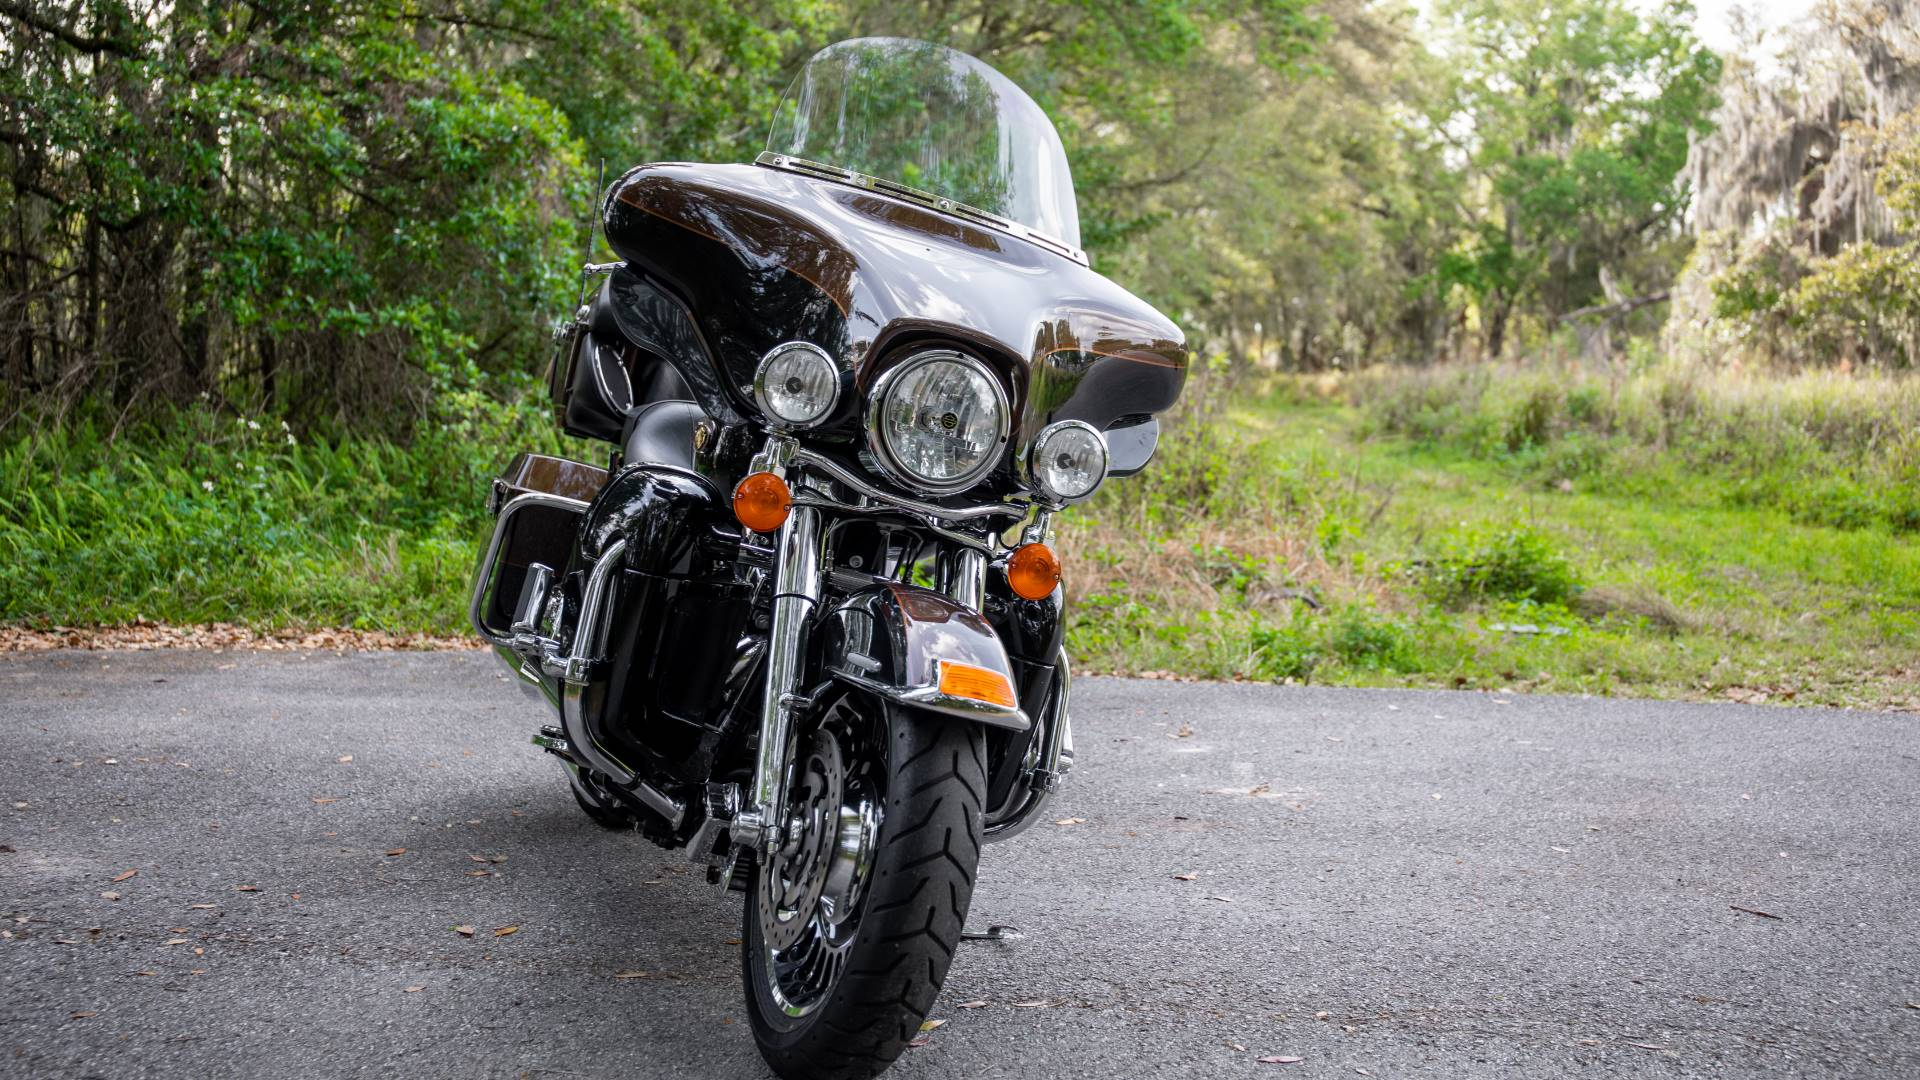 2013 Harley-Davidson Electra Glide® Ultra Limited 110th Anniversary Edition in Lakeland, Florida - Photo 29